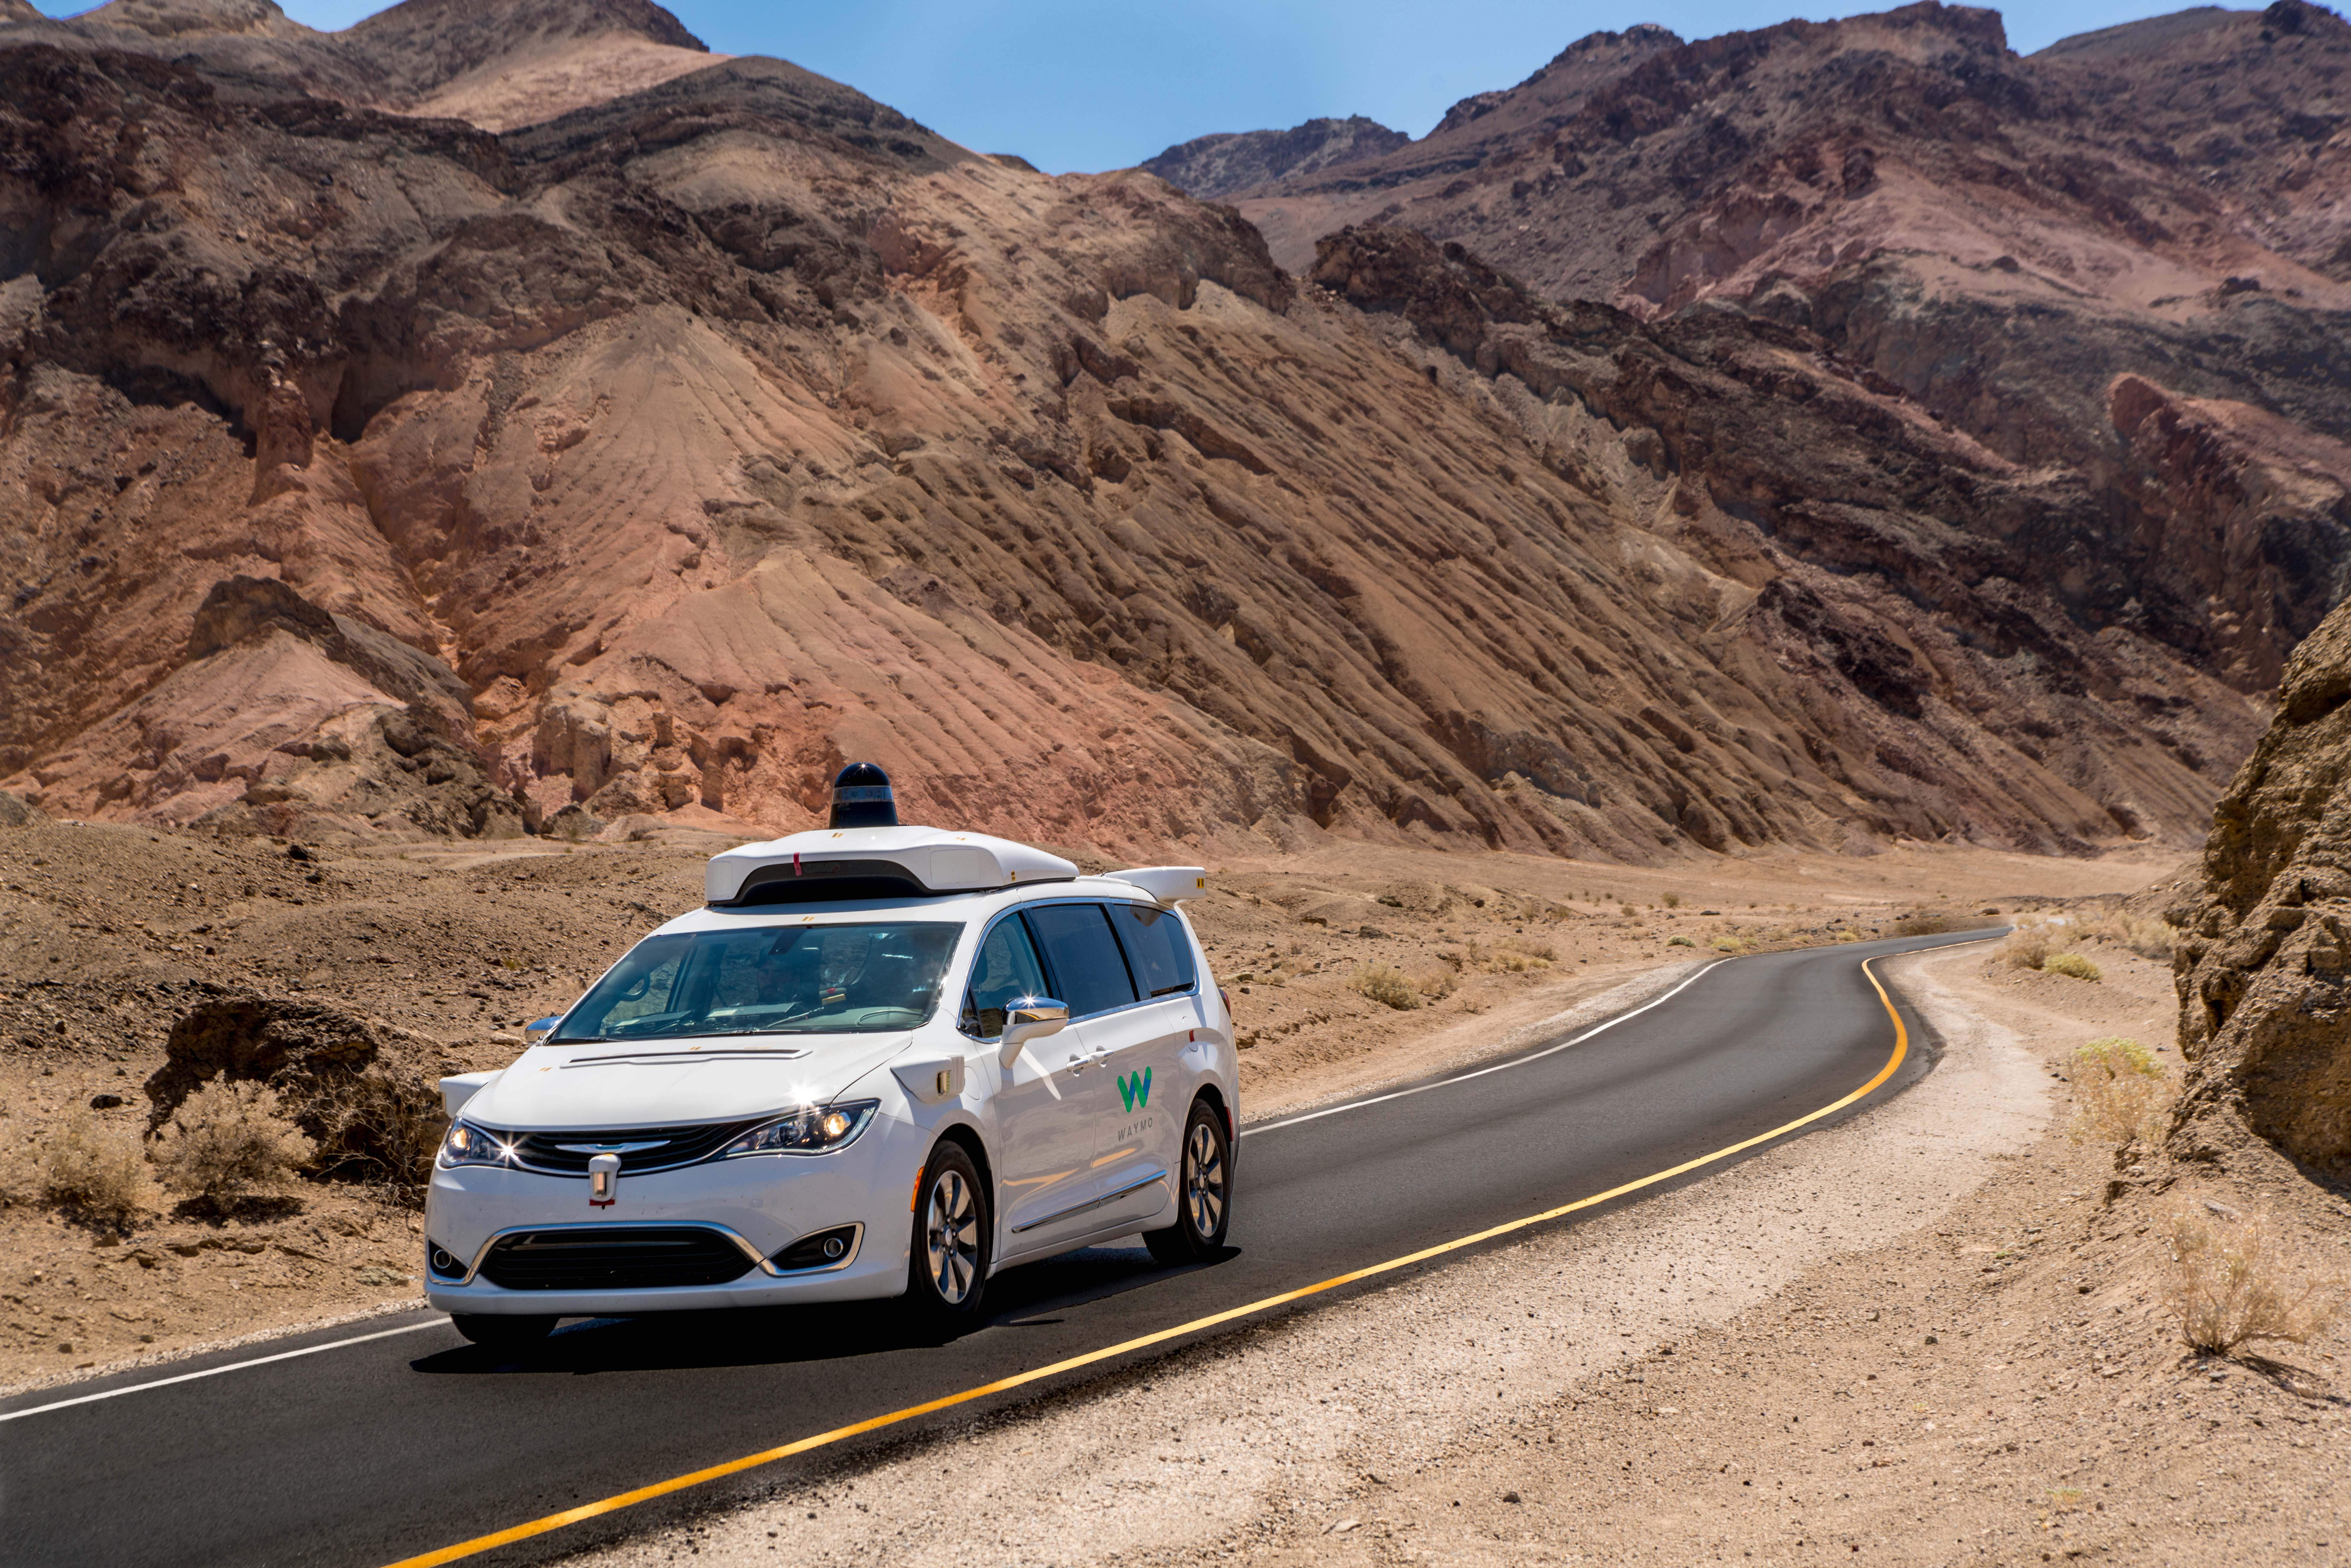 Waymo sent its Chrysler Pacifica self-driving minivans to Death Valley and other hotspots.